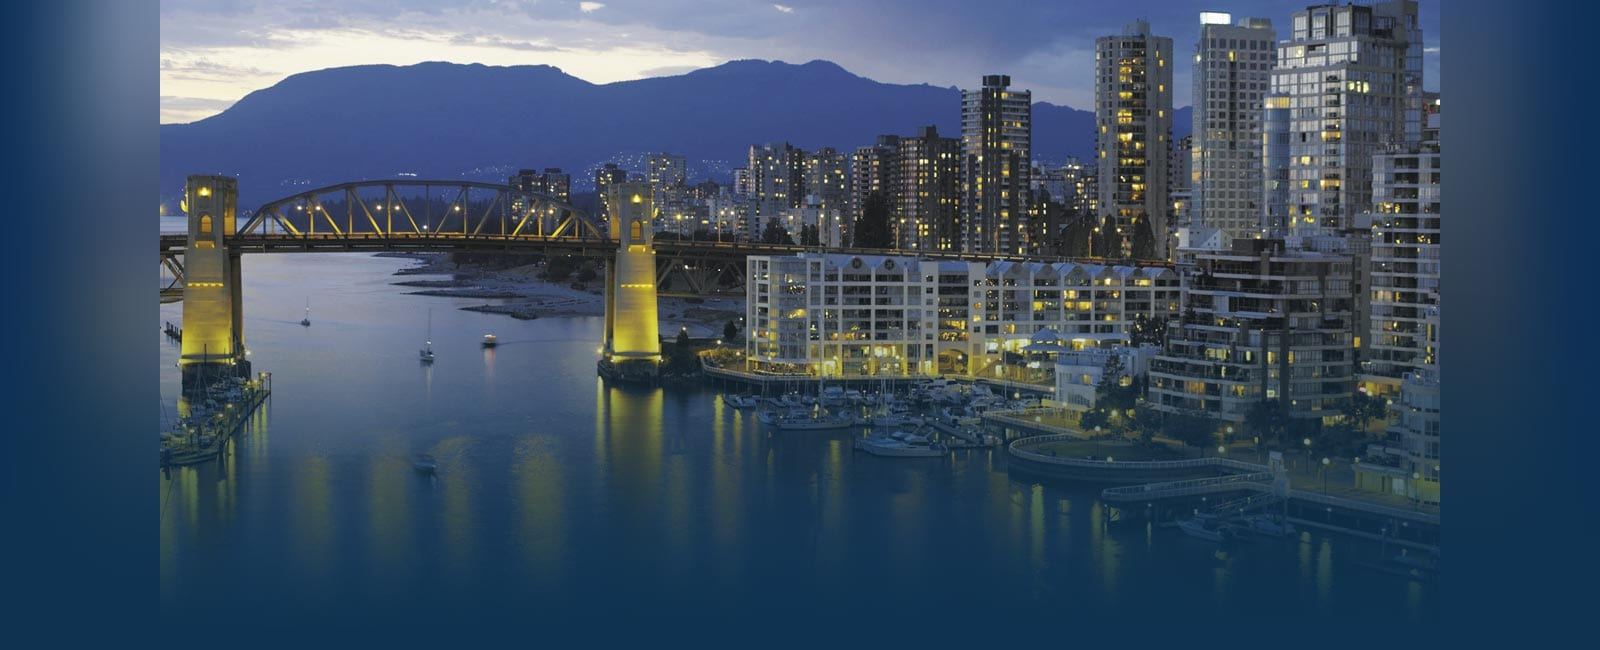 Vancouver B.C city at dusk